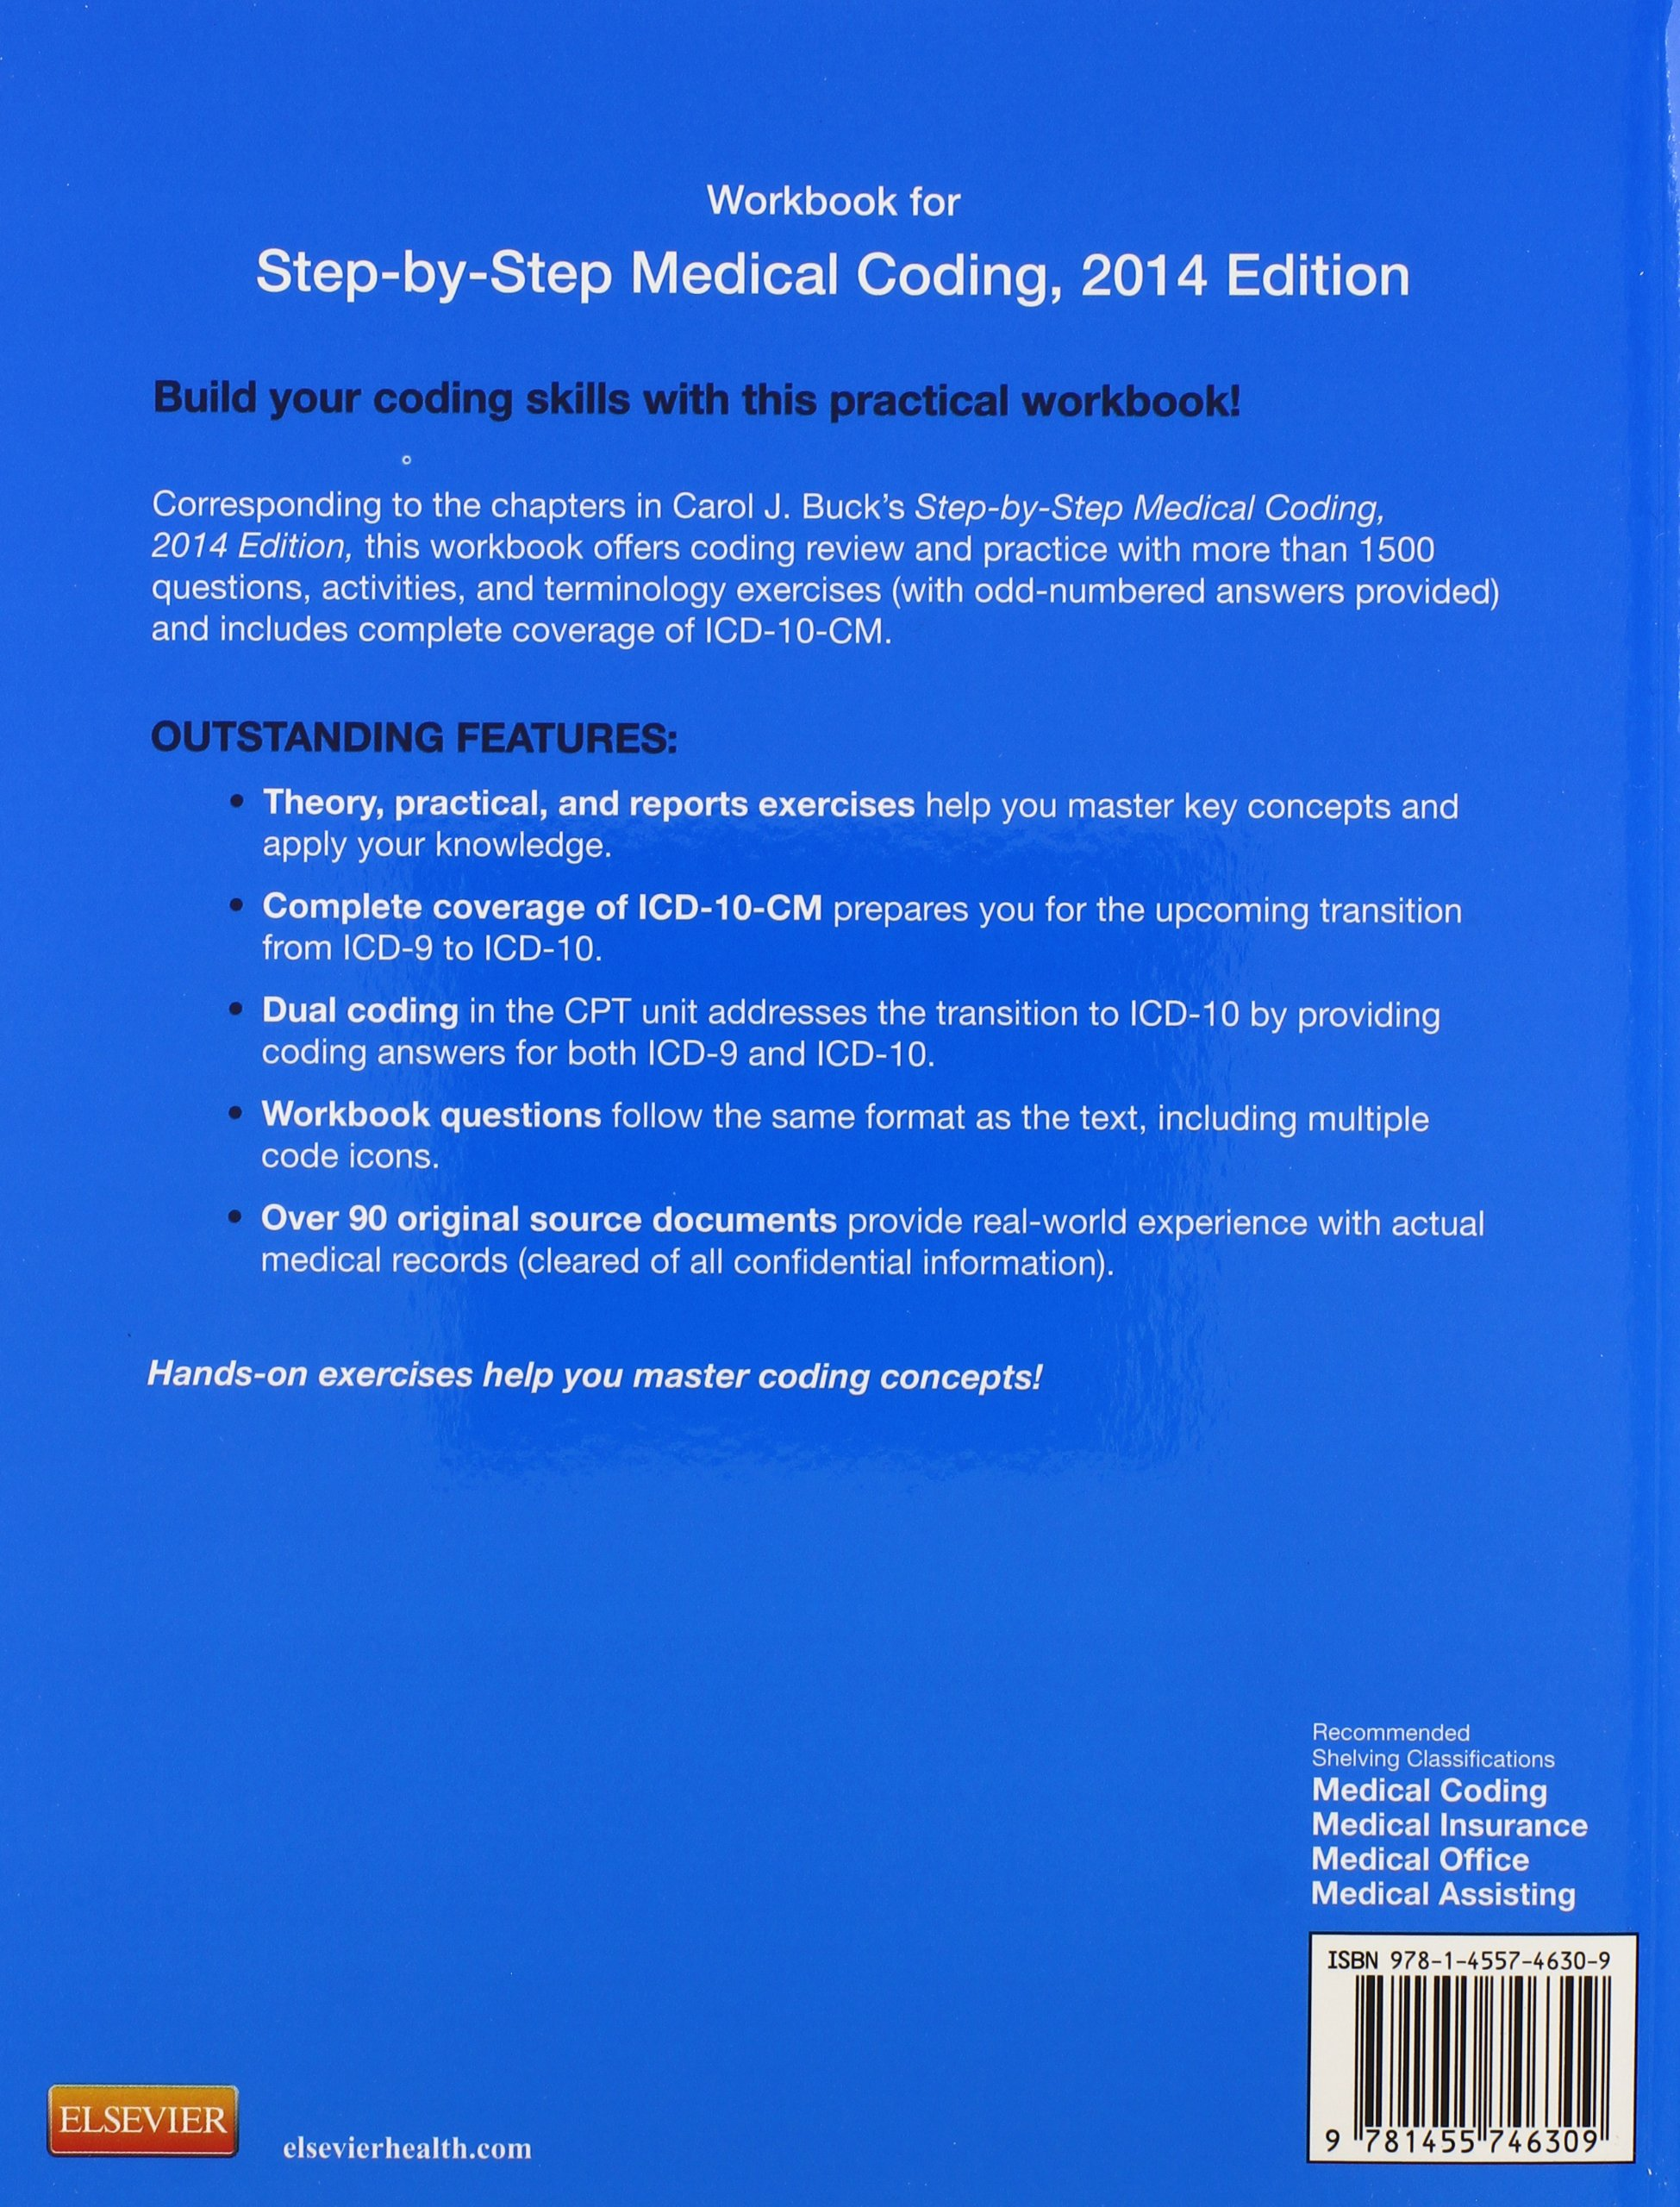 Workbook for Step-by-Step Medical Coding, 2014 Edition